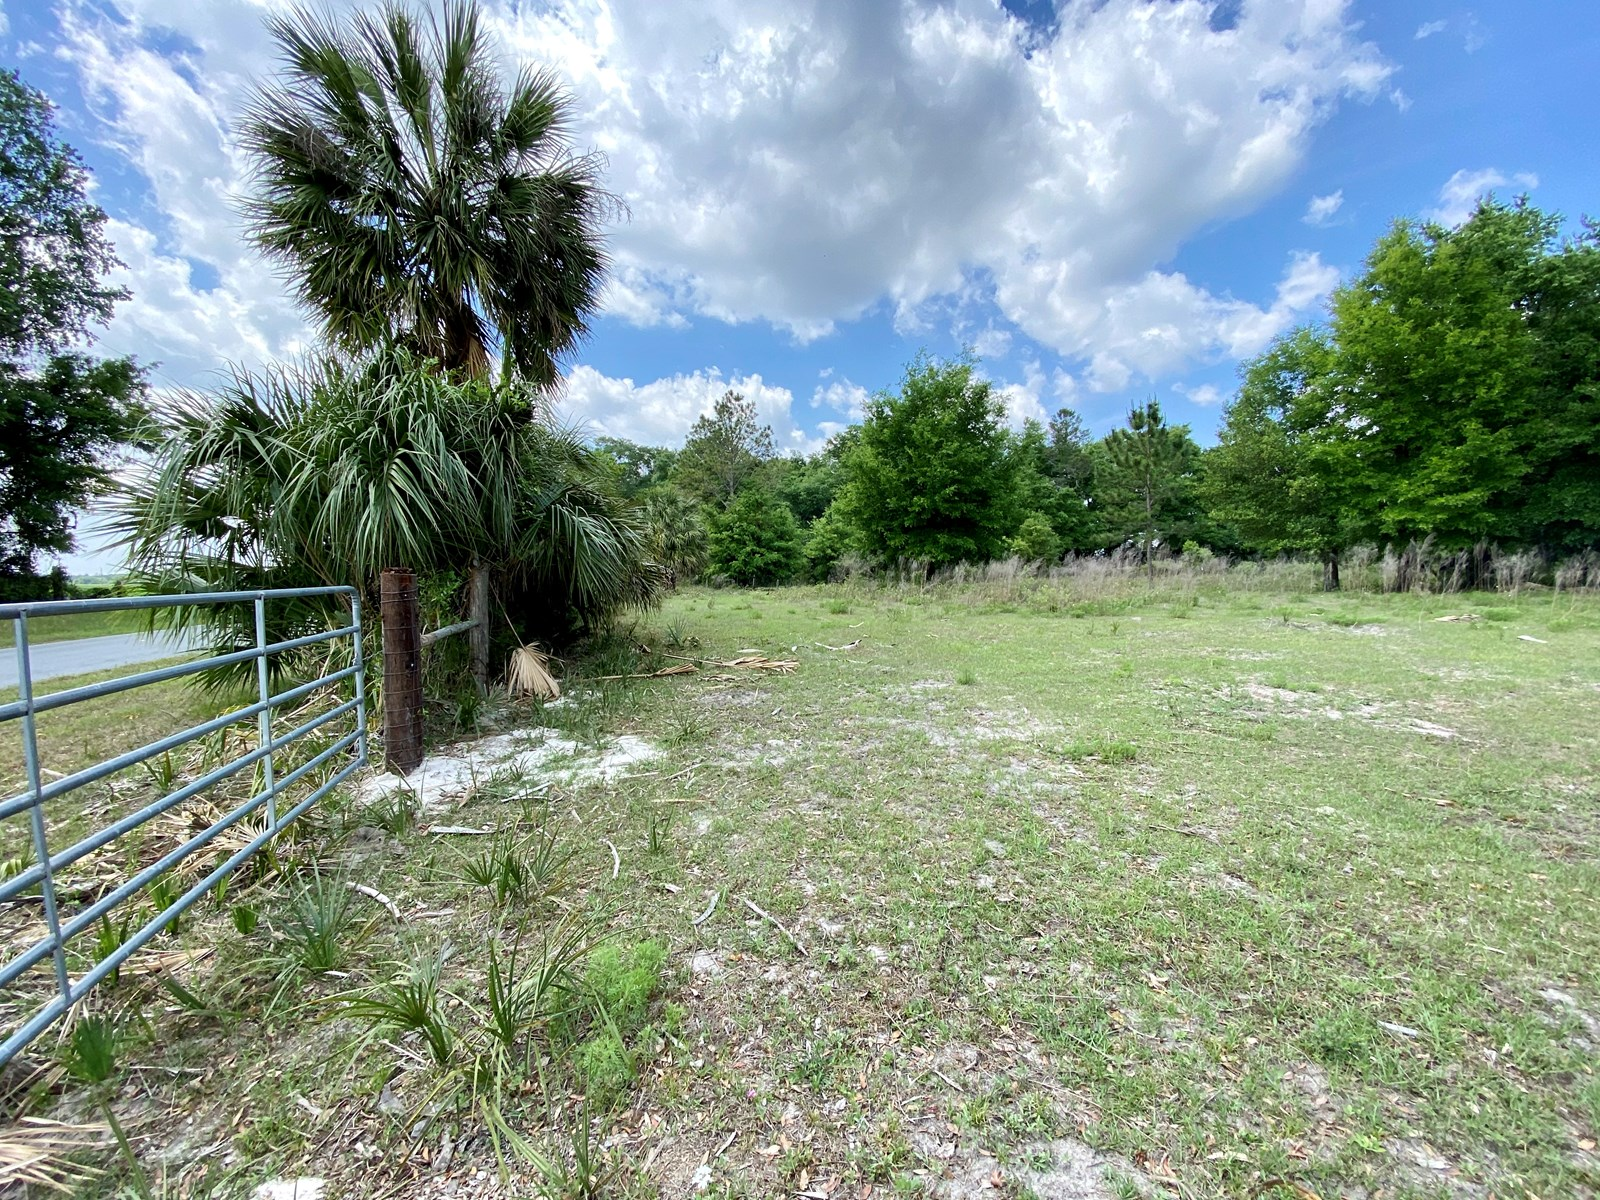 41 Acres in Mayo - Fenced and Ready!